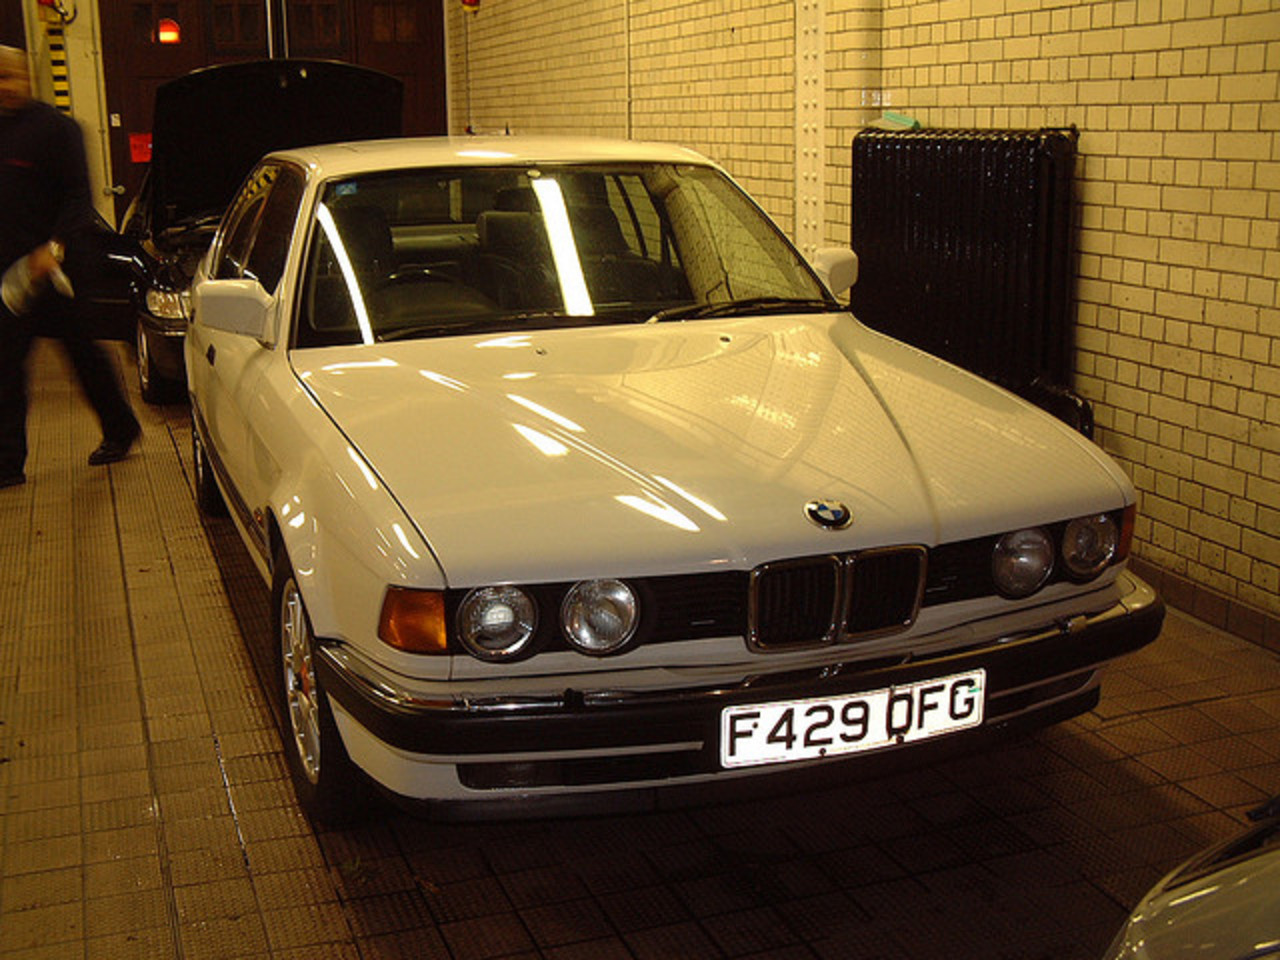 BMW 730iL | Flickr - Photo Sharing!